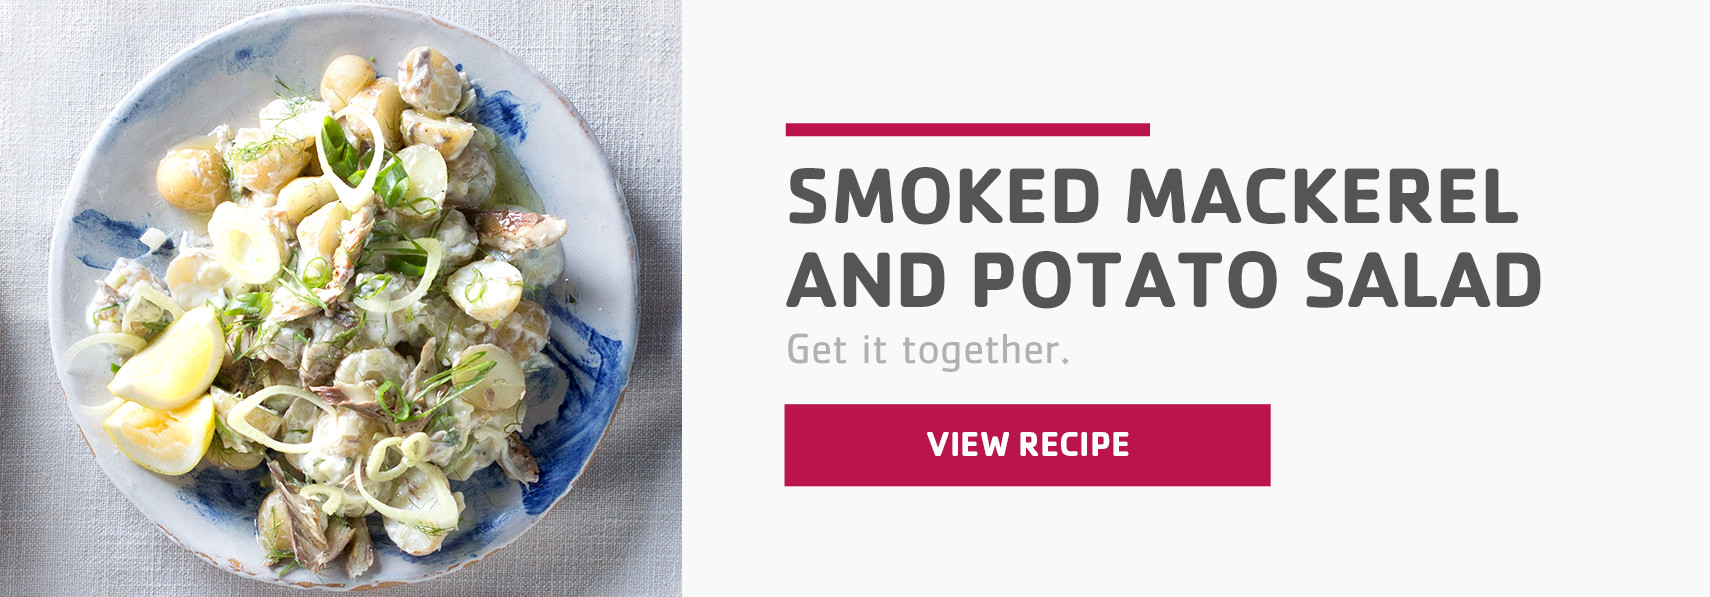 Smoked mackerel and potato salad recipe listing page banner.jpg